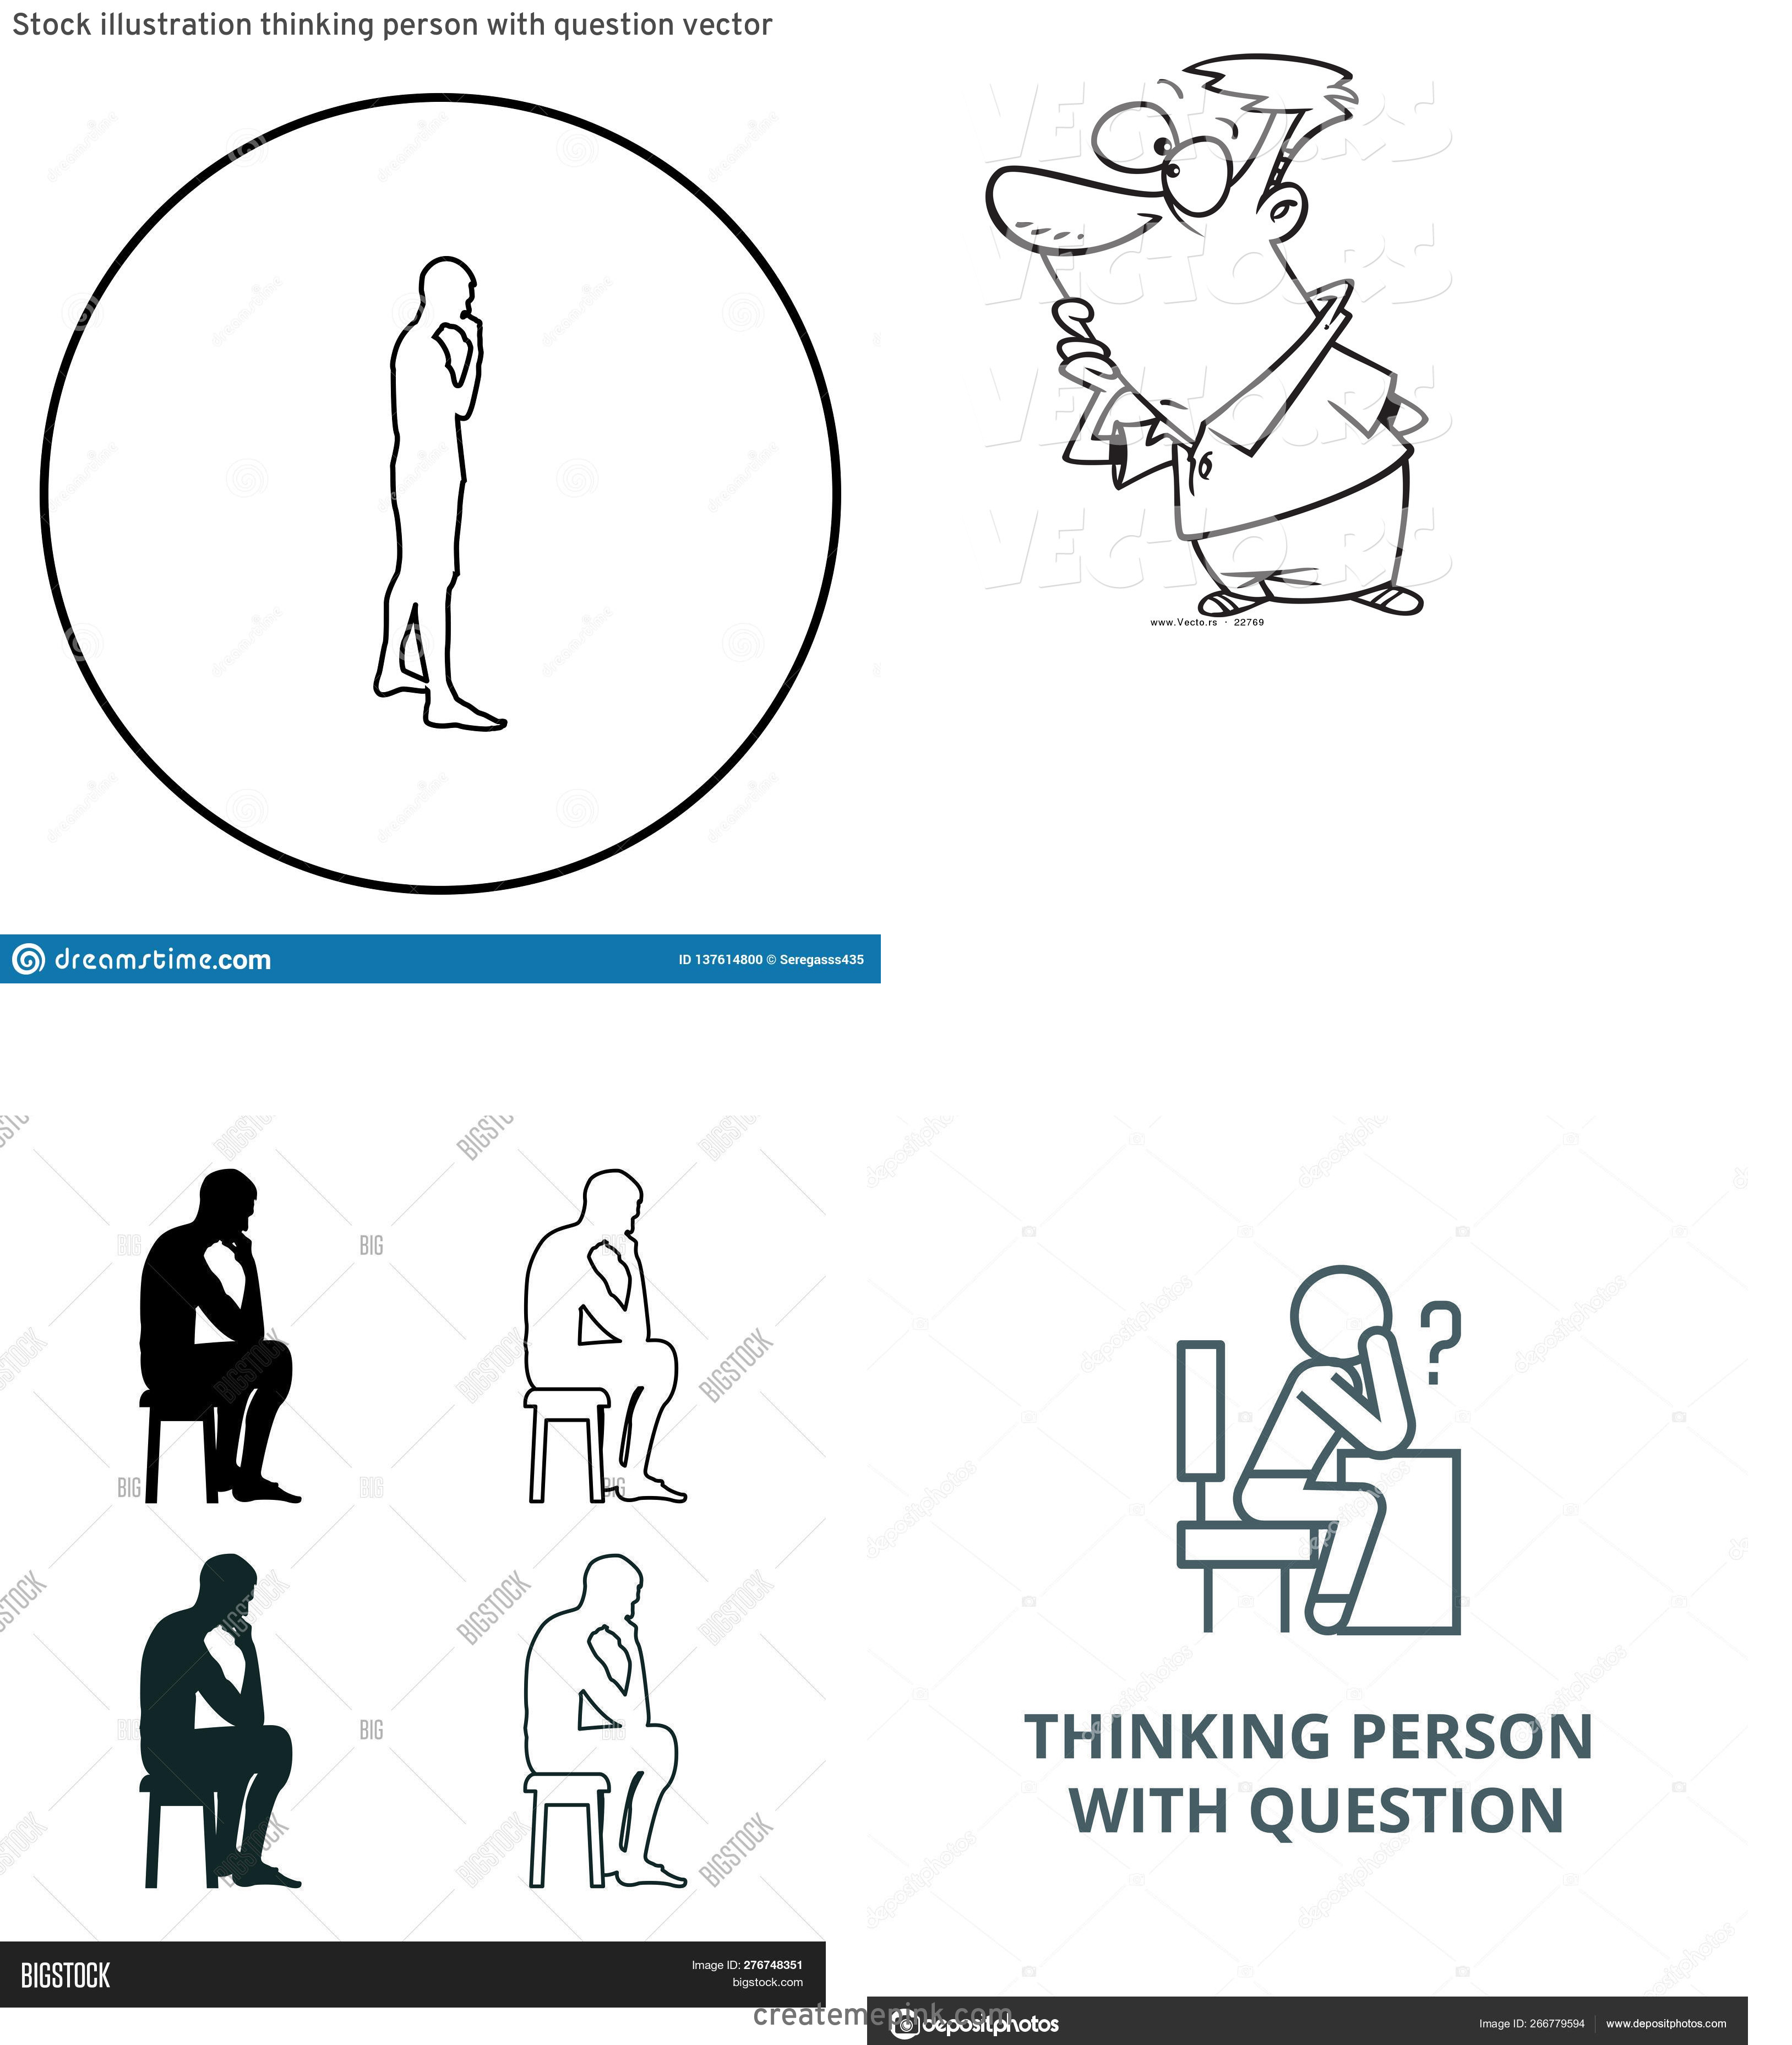 Person Thinking Outline Vector: Stock Illustration Thinking Person With Question Vector